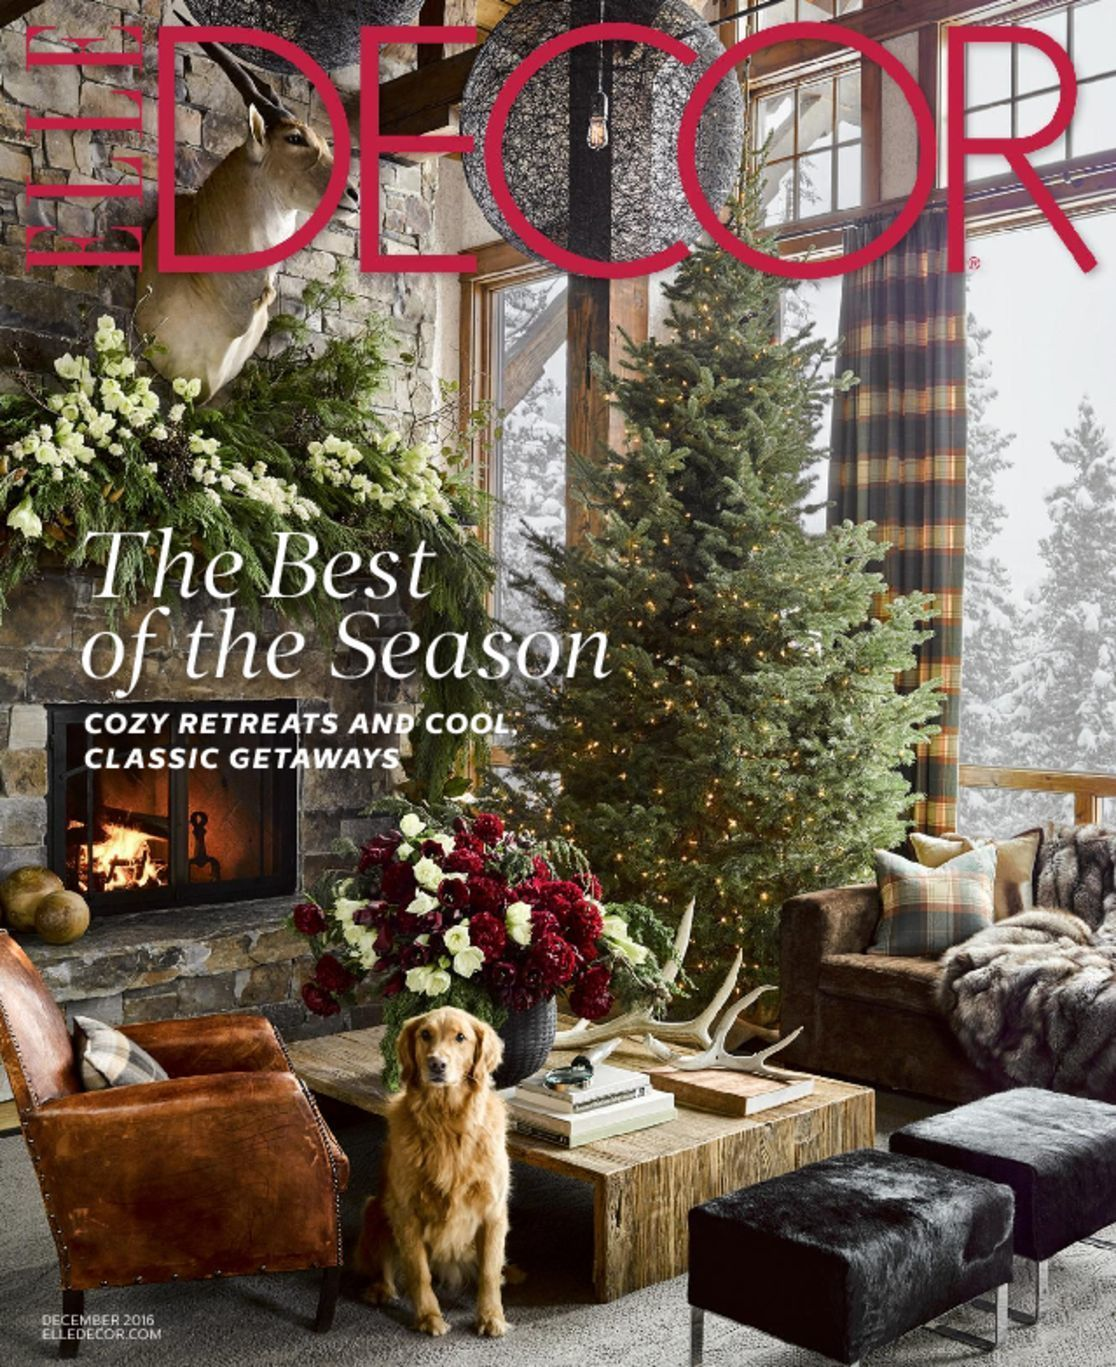 Elle Decor Magazine Subscription | Elle decor magazine, Elle ...